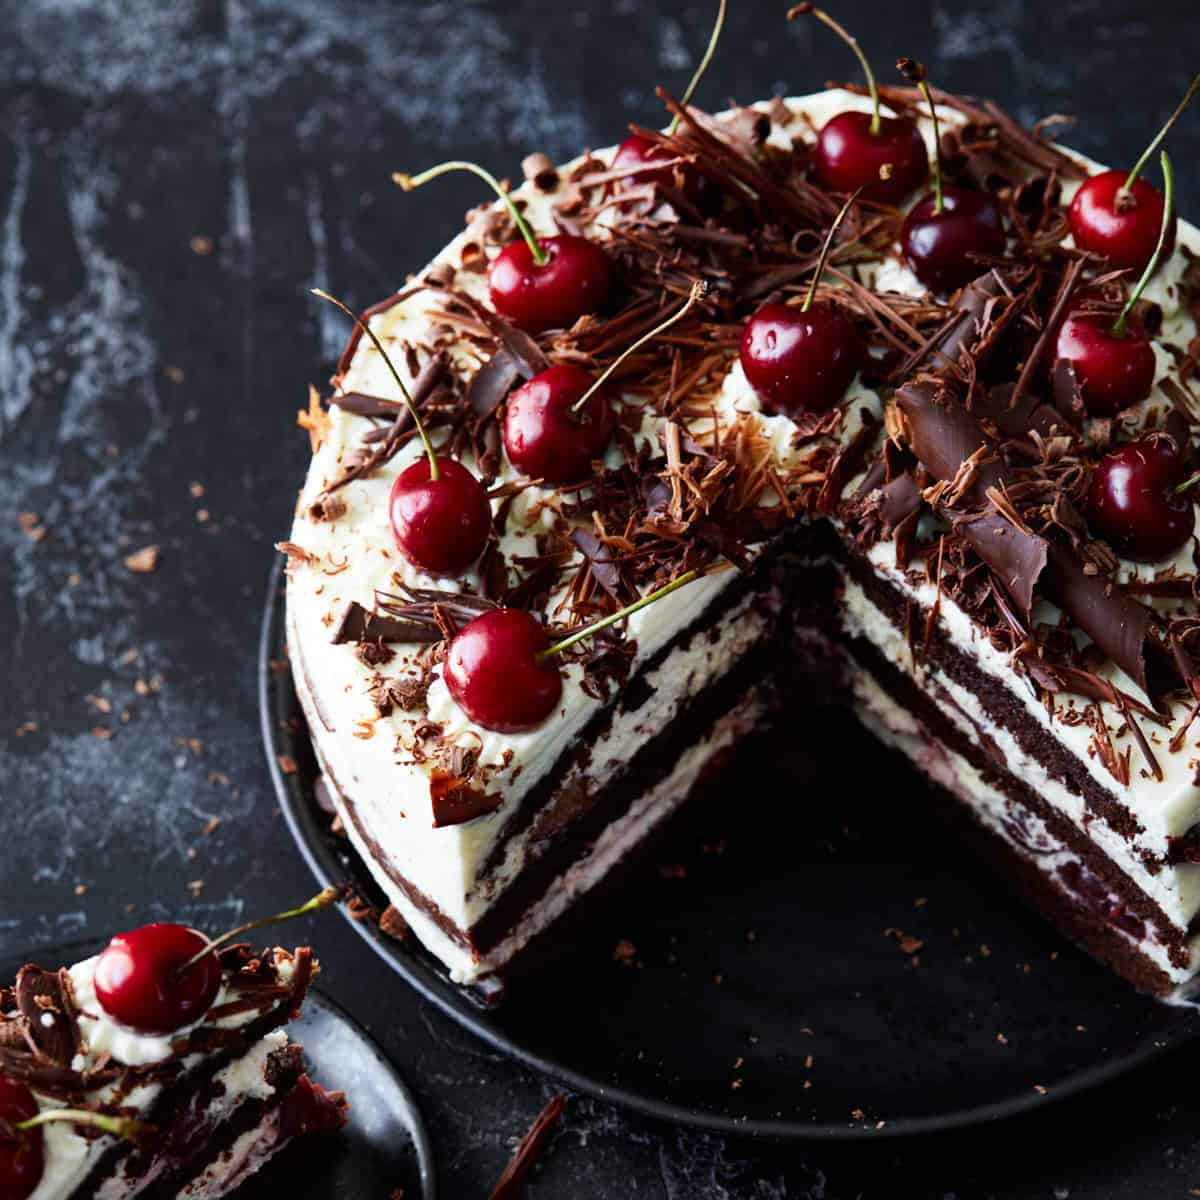 Baked and decorated Black Forest cake on a cake plate with a quarter of it missing